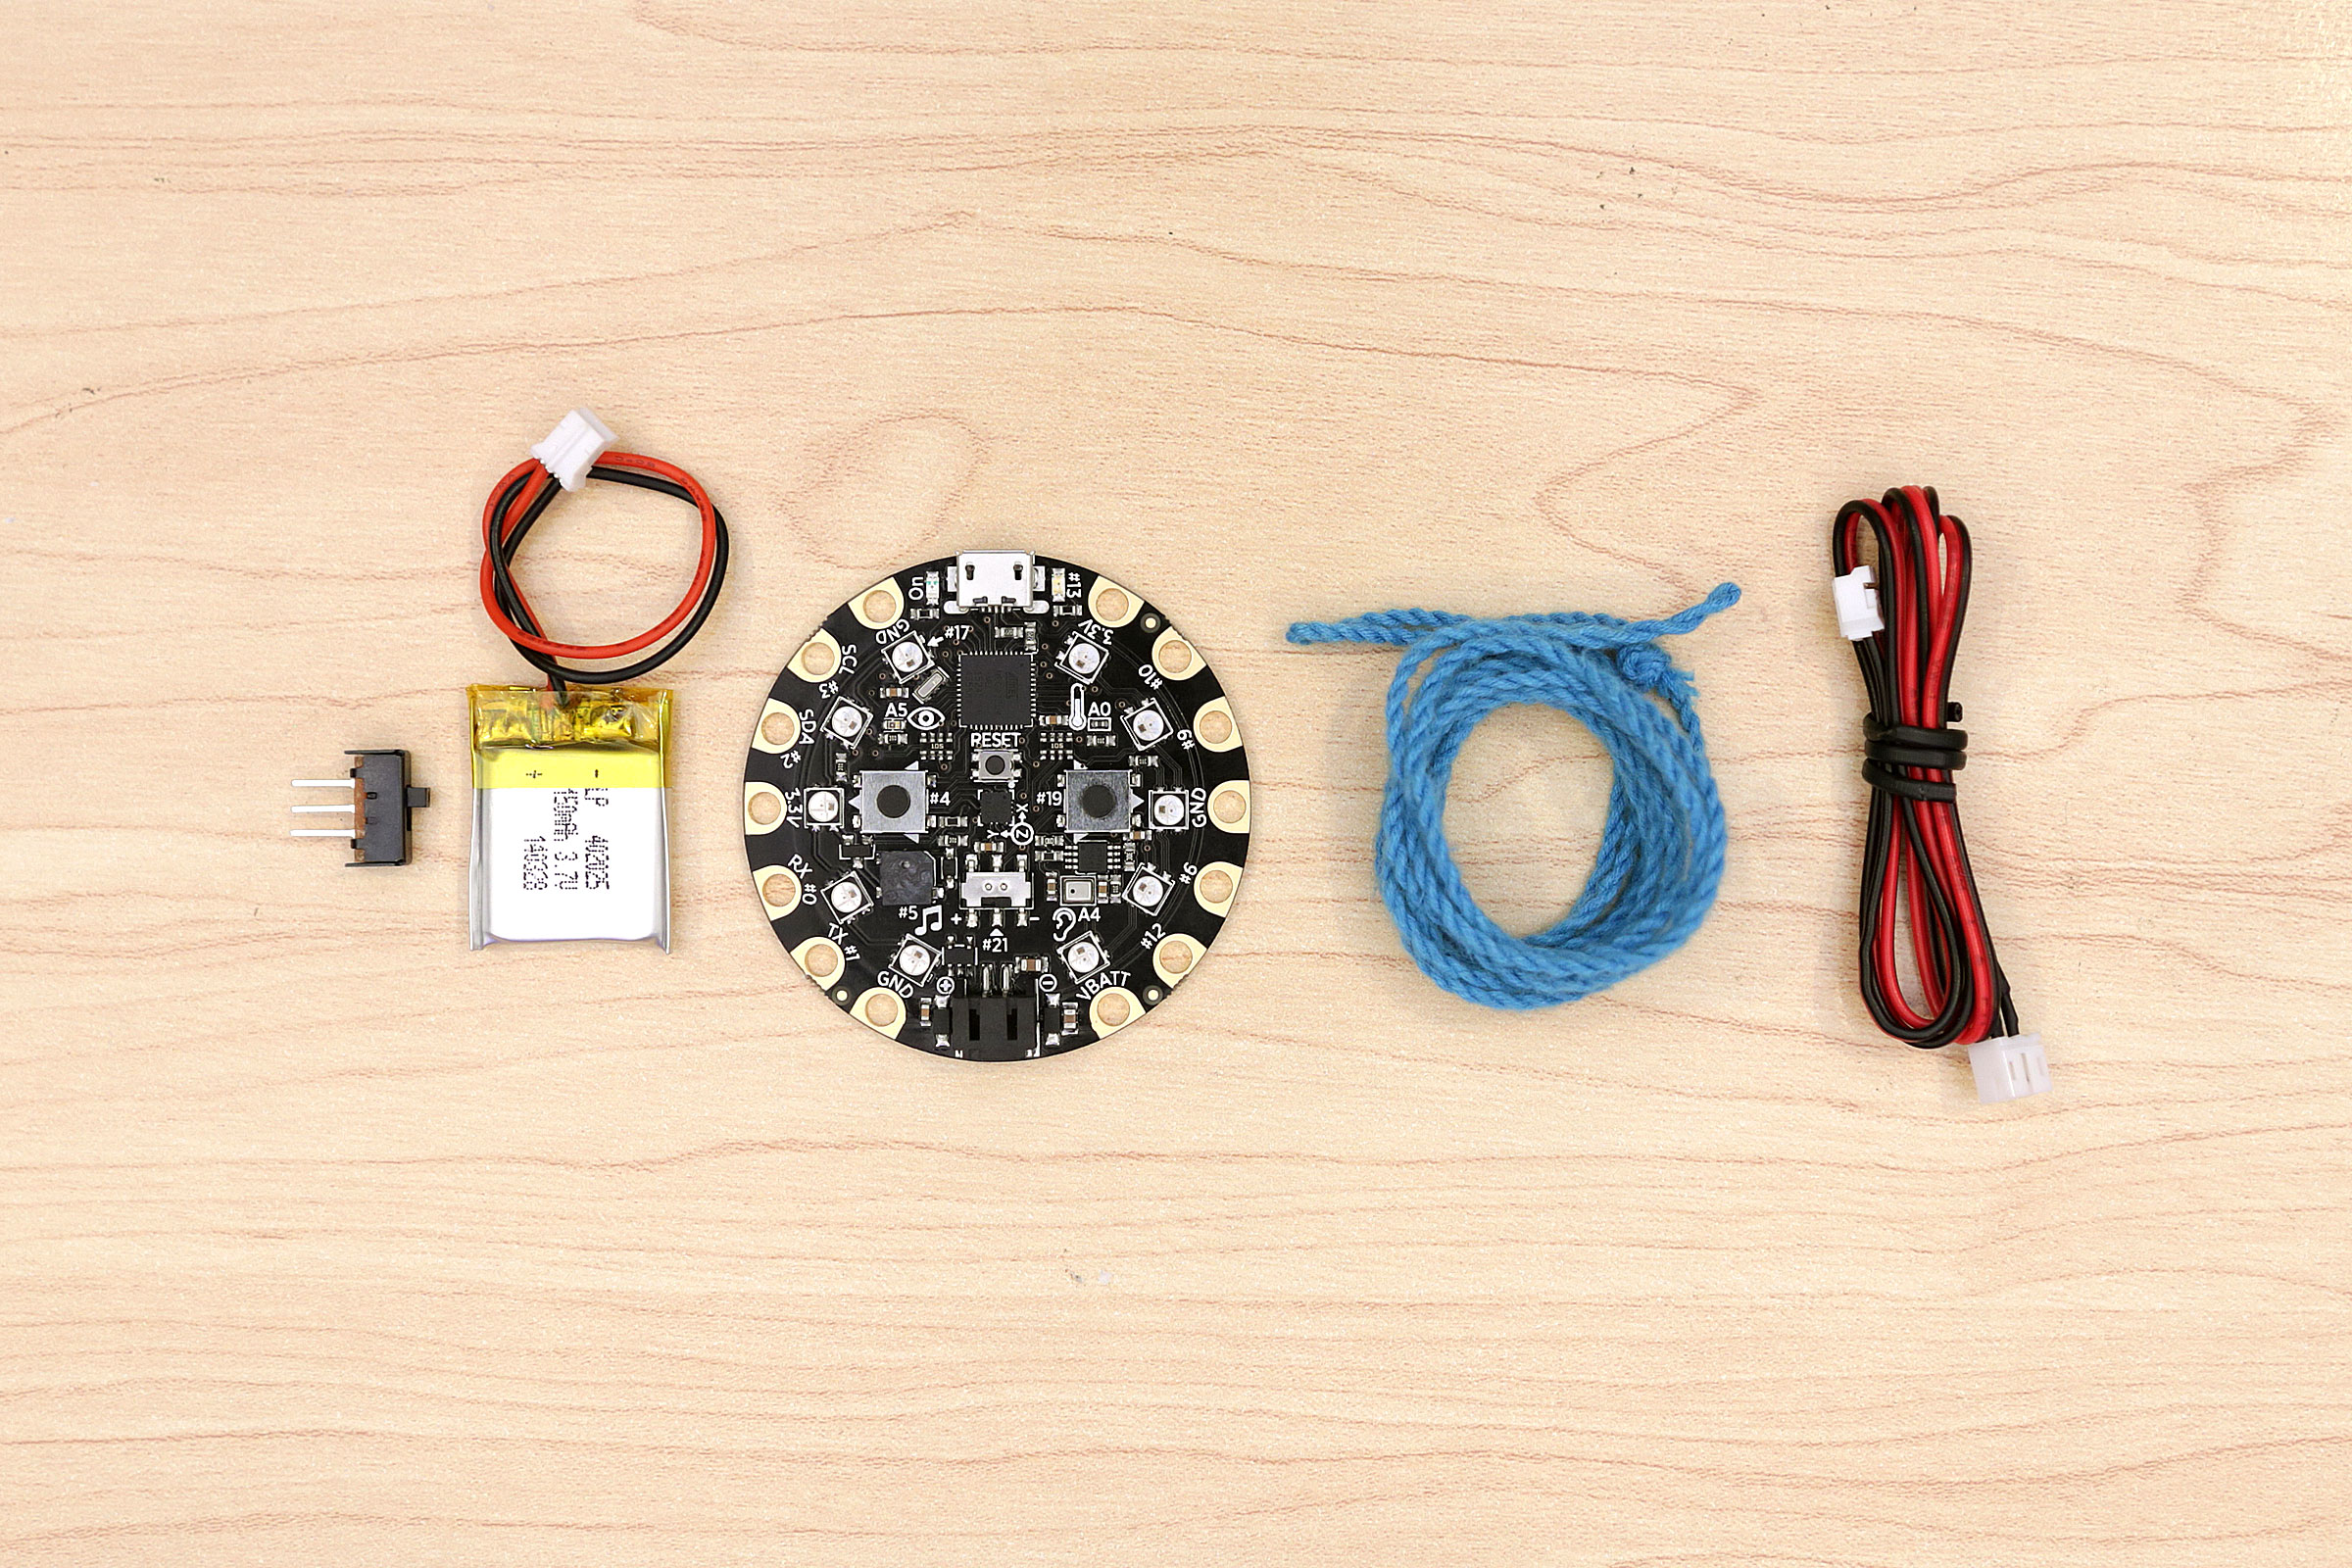 circuit_playground_components.jpg